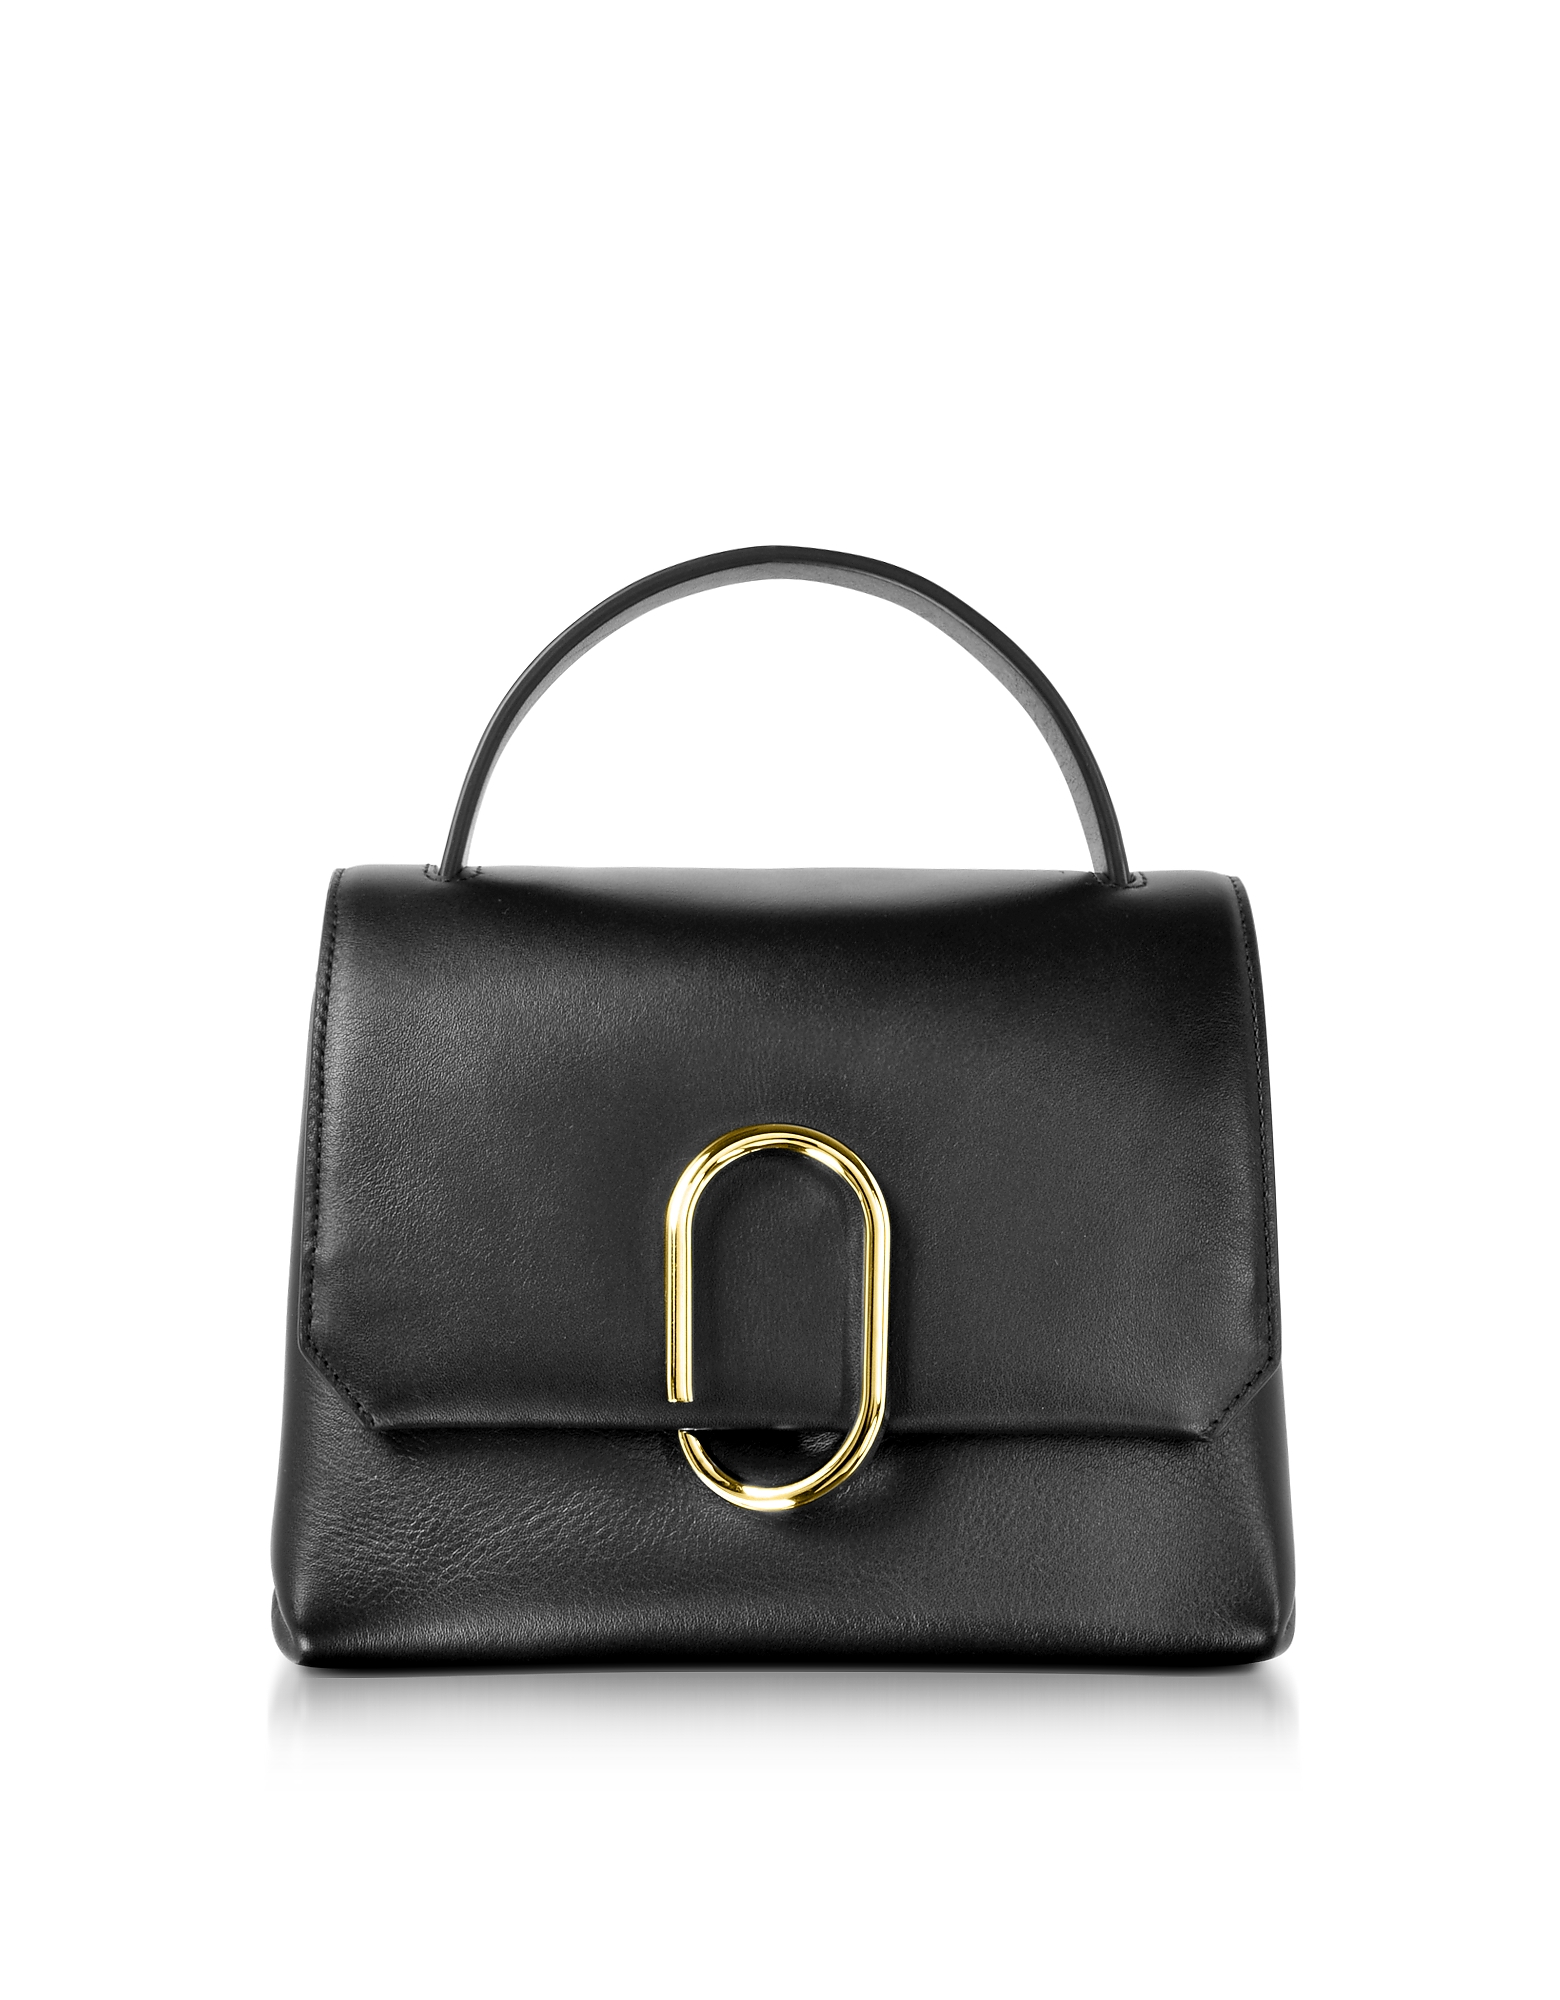 Image of 3.1 Phillip Lim Designer Handbags, Alix Black Leather Mini Top Handle Satchel Bag